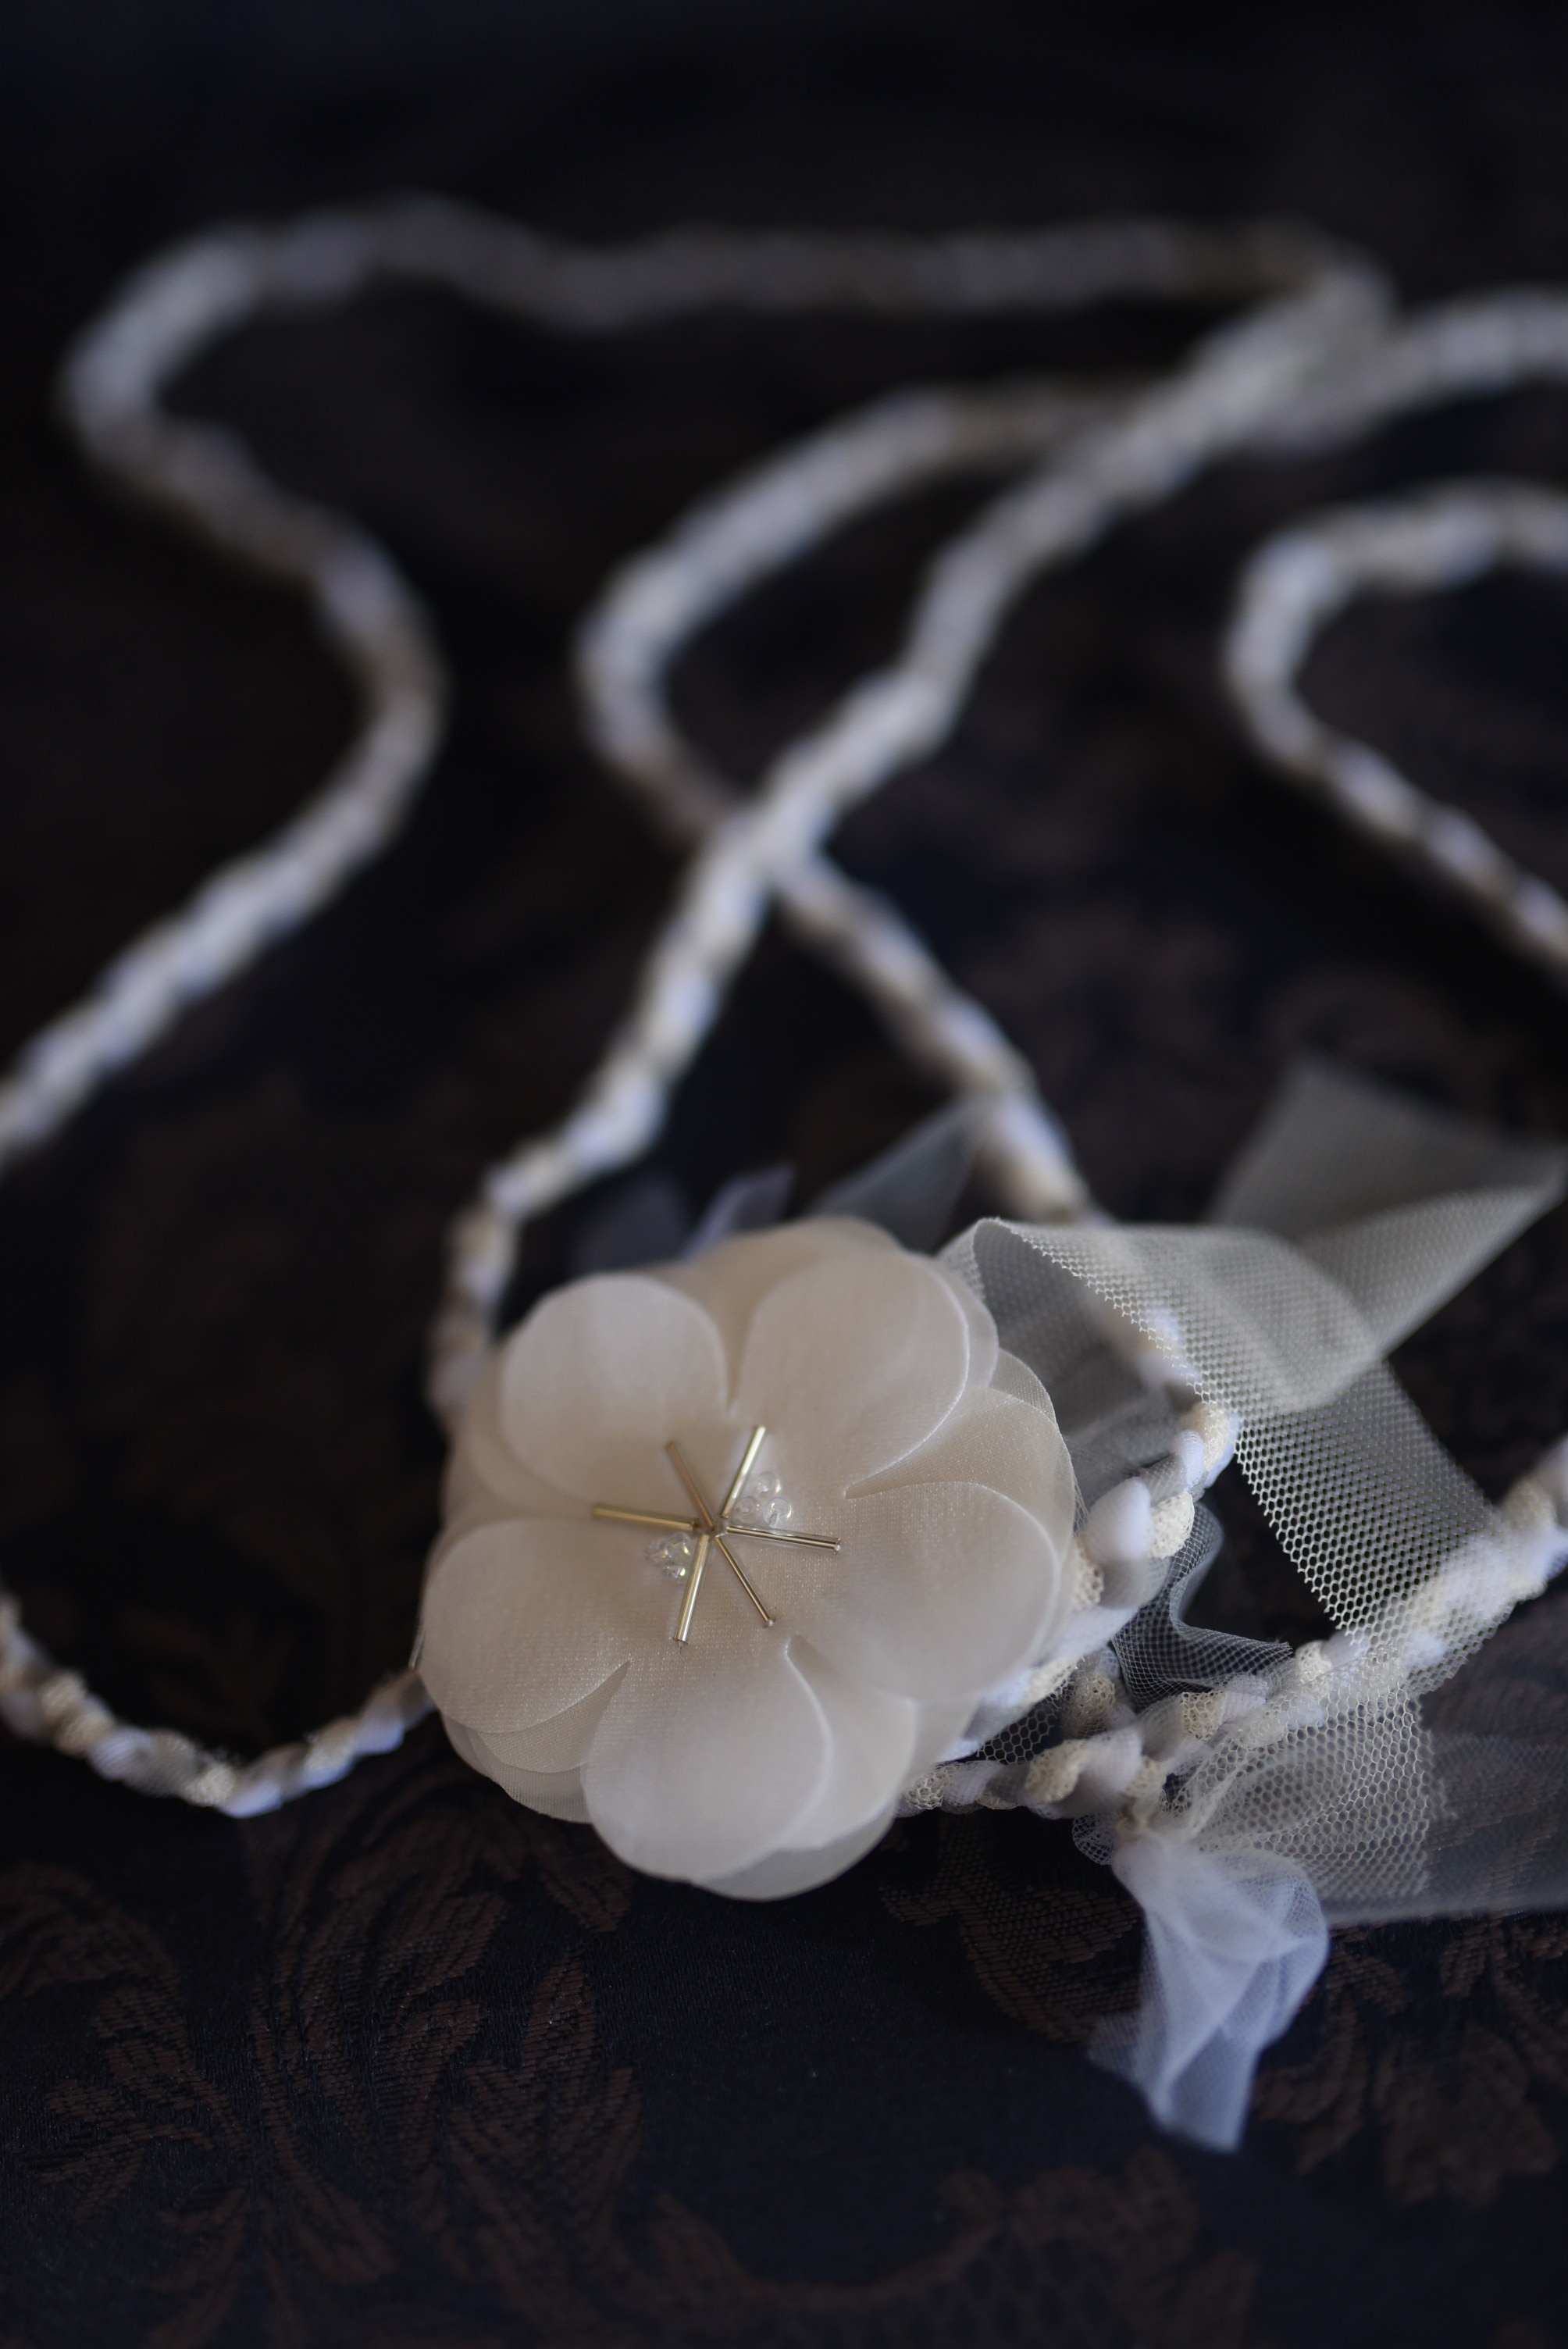 Our cord. Made by braided stretch tulle, in cream, gray, and white. With fabric flowers.